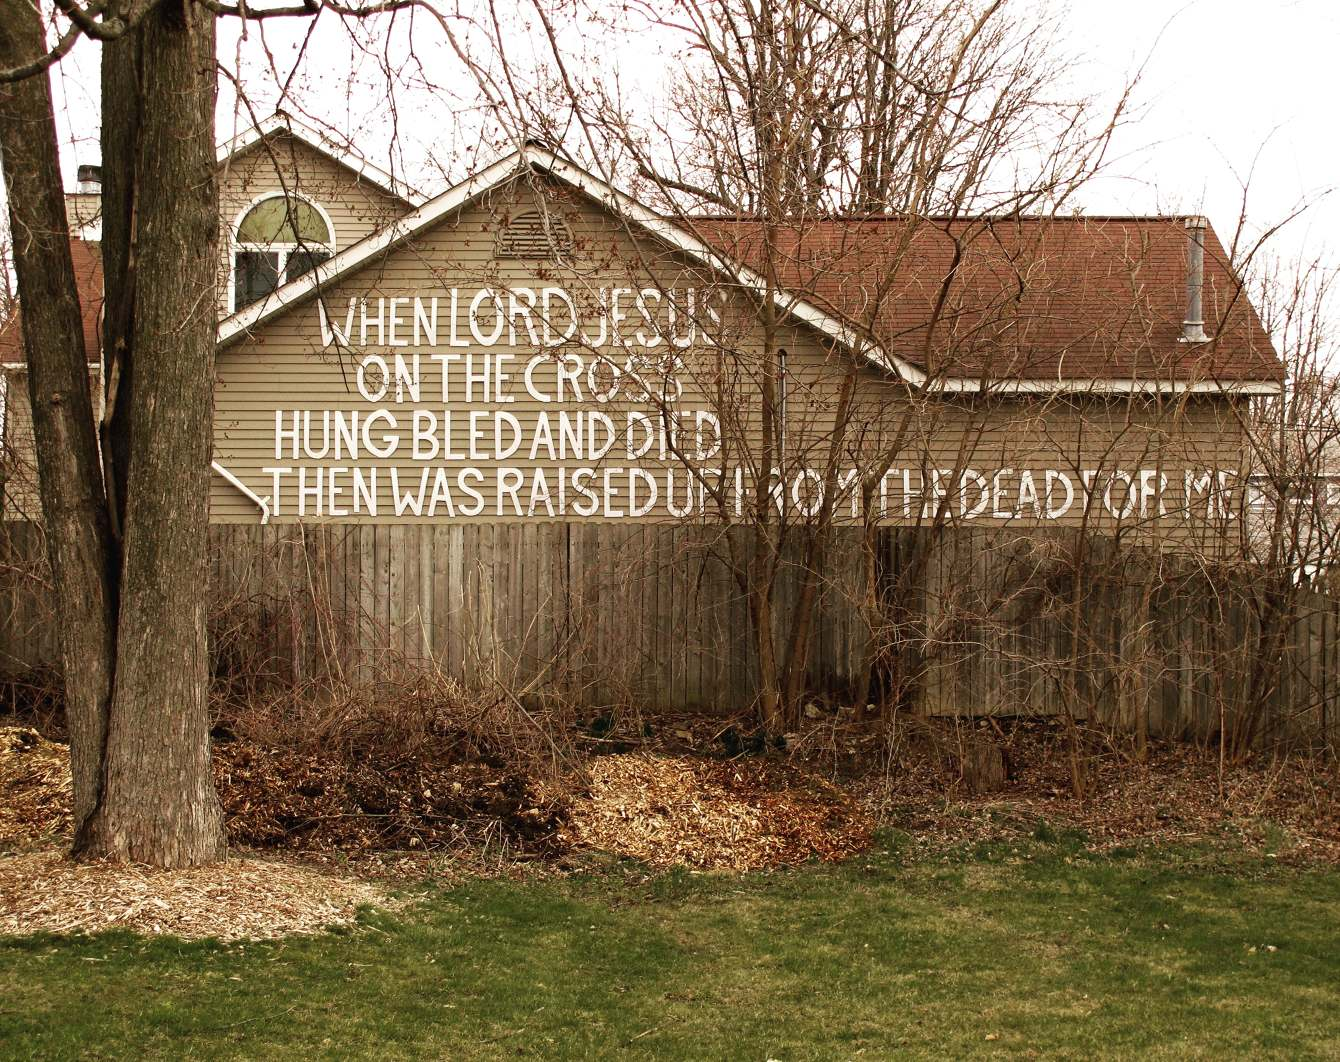 Perfectly acceptable message for a neighbor to affix on the back of his suburban house. Not creepy at all.